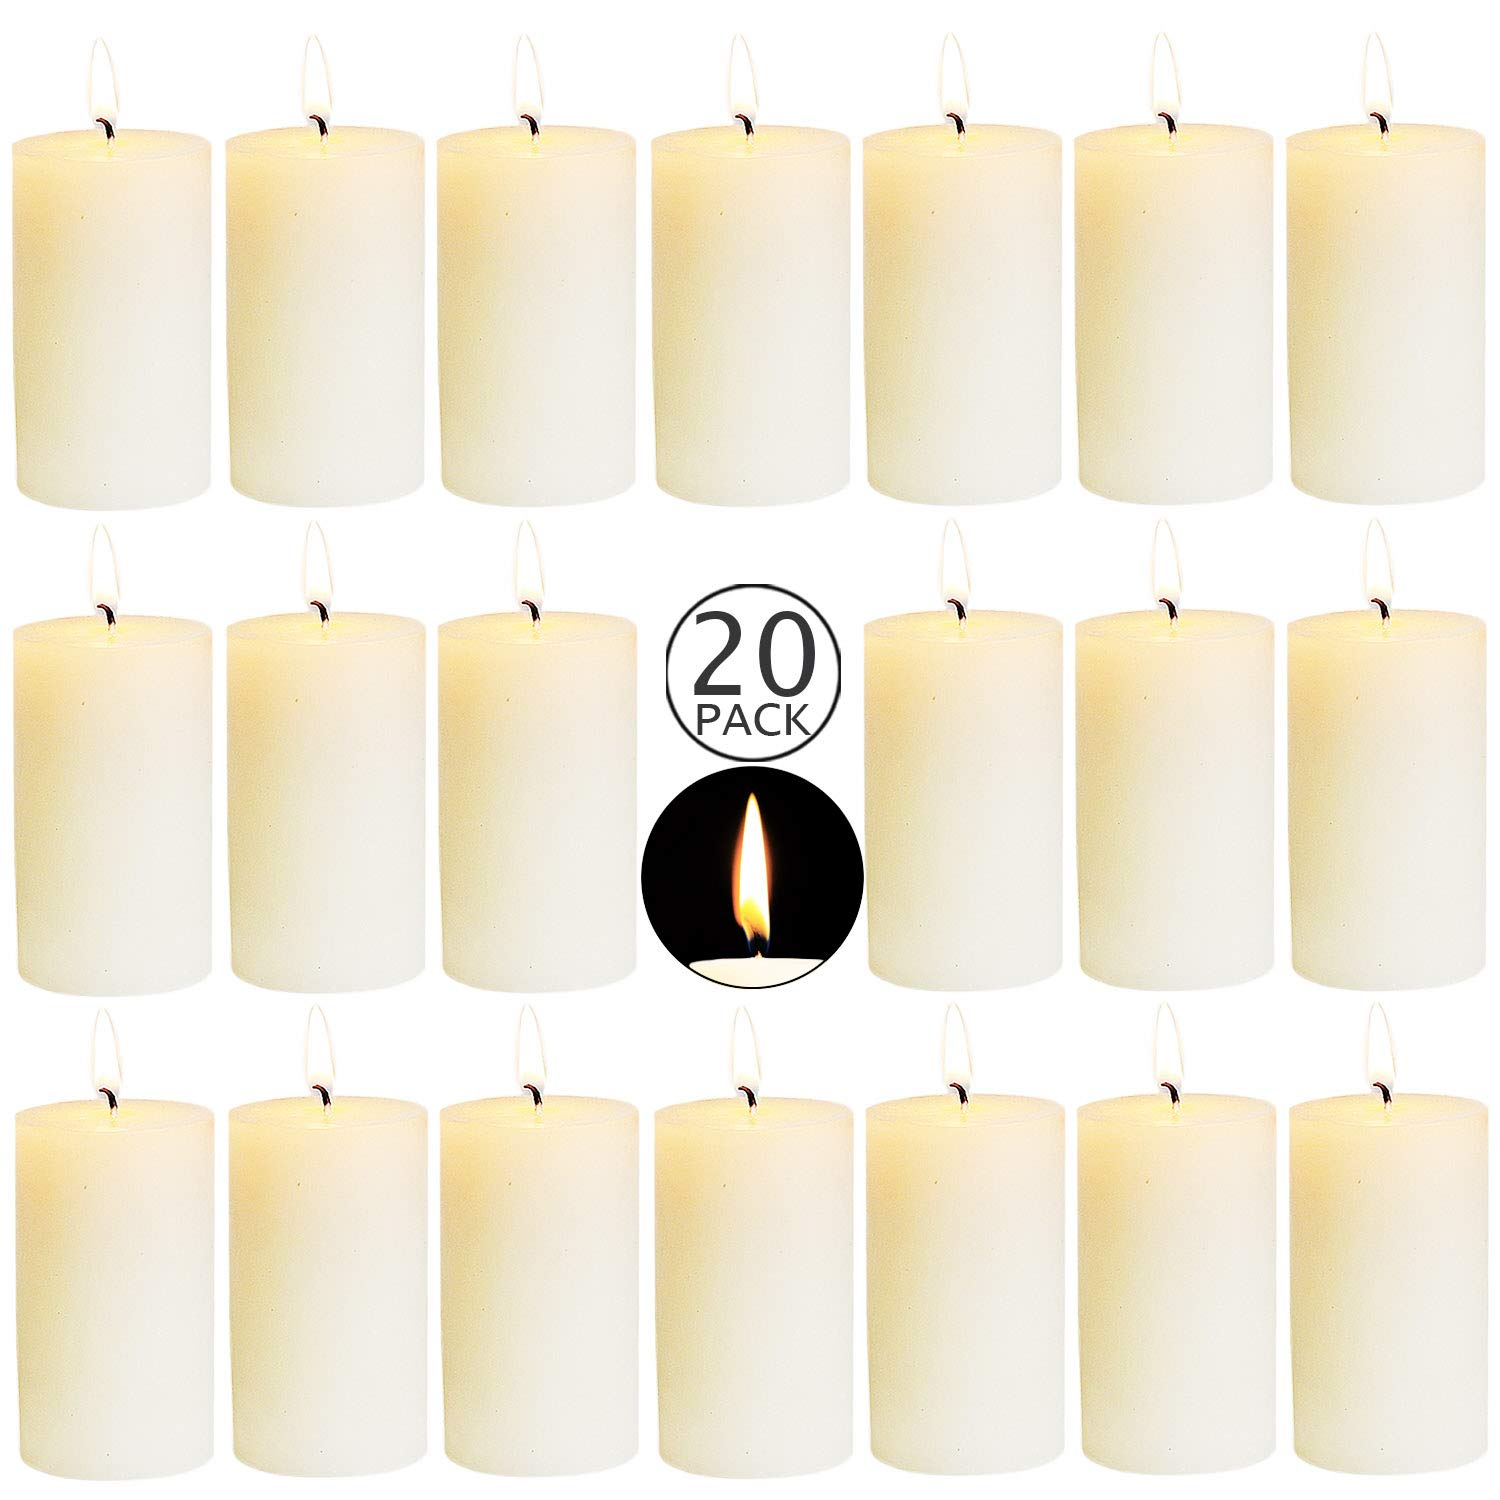 XYUT 20 Ivory Wedding Party Pillar Candles Aprox. 2X4 Inches